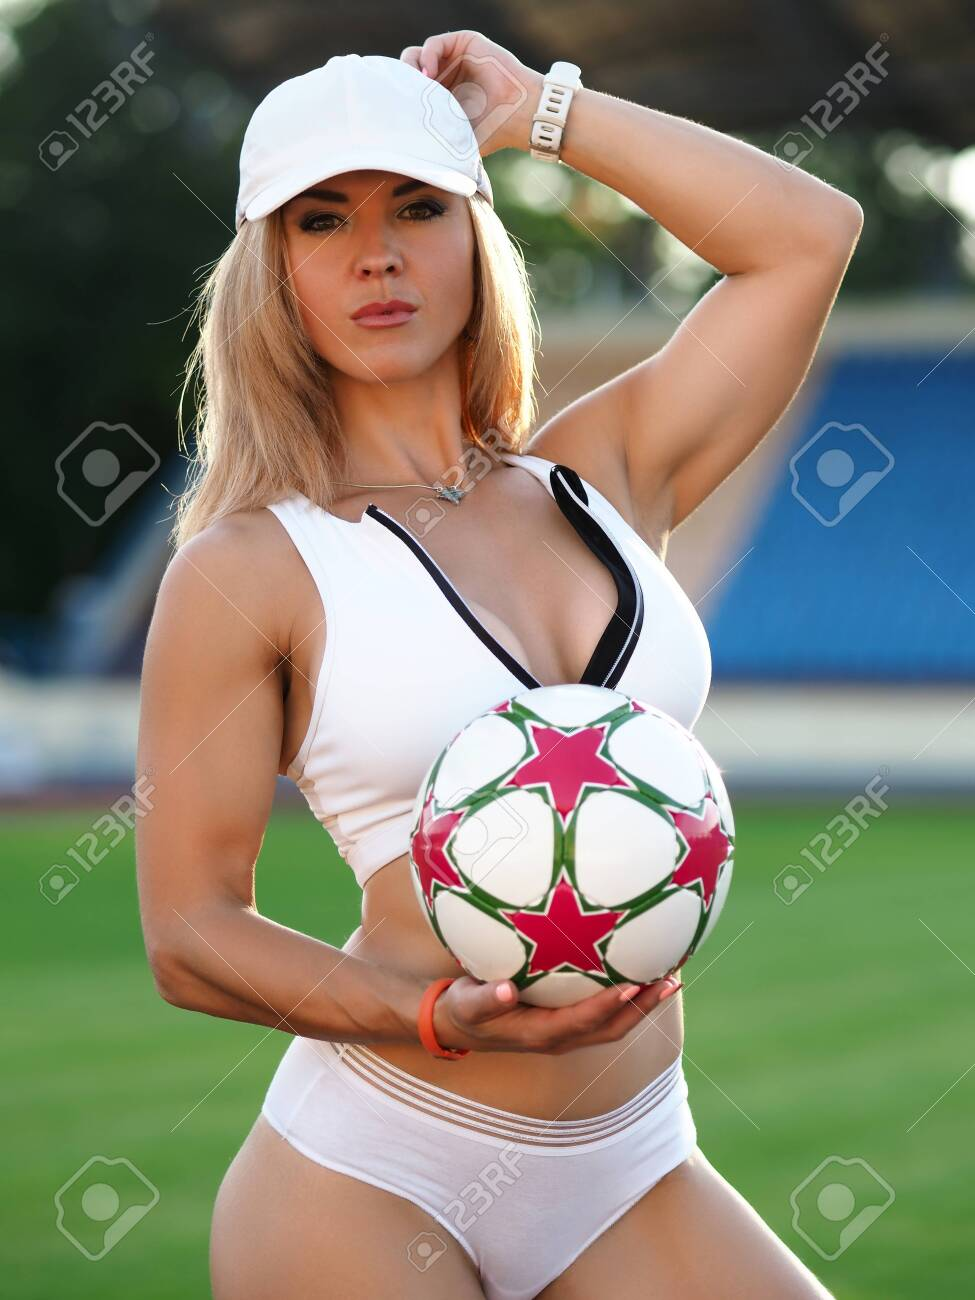 Beautiful girl stands on soccer field with ball. Training or competition for adults. Attractiveness womens football. Photo session at stadium, beautiful photo women for social network - 143773352